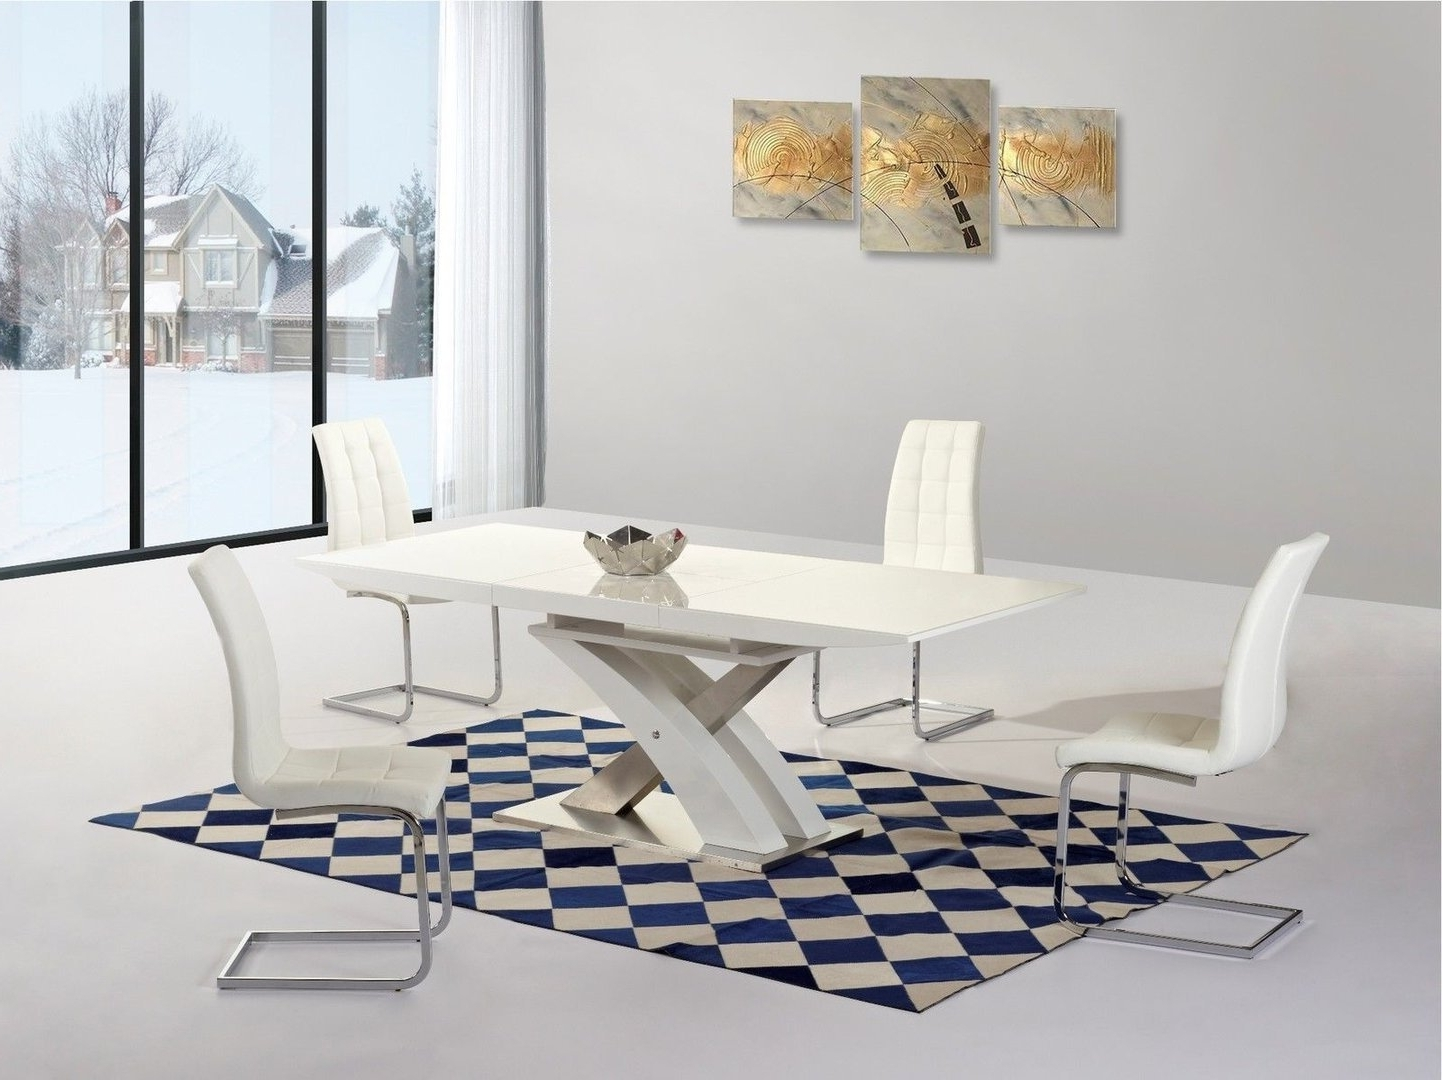 White Extending Gloss Dining Table And 6 Chairs – Homegenies Regarding Widely Used Extending Dining Tables With 6 Chairs (View 12 of 25)